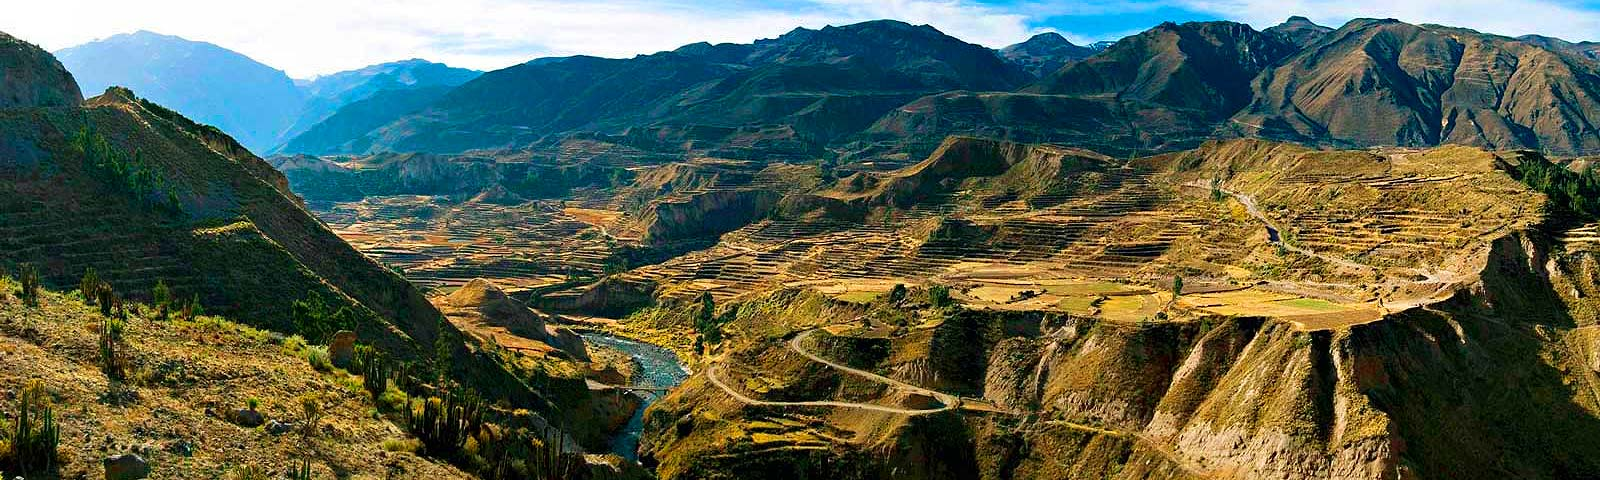 AREQUIPA - COLCA CANYON IN 01 DAY